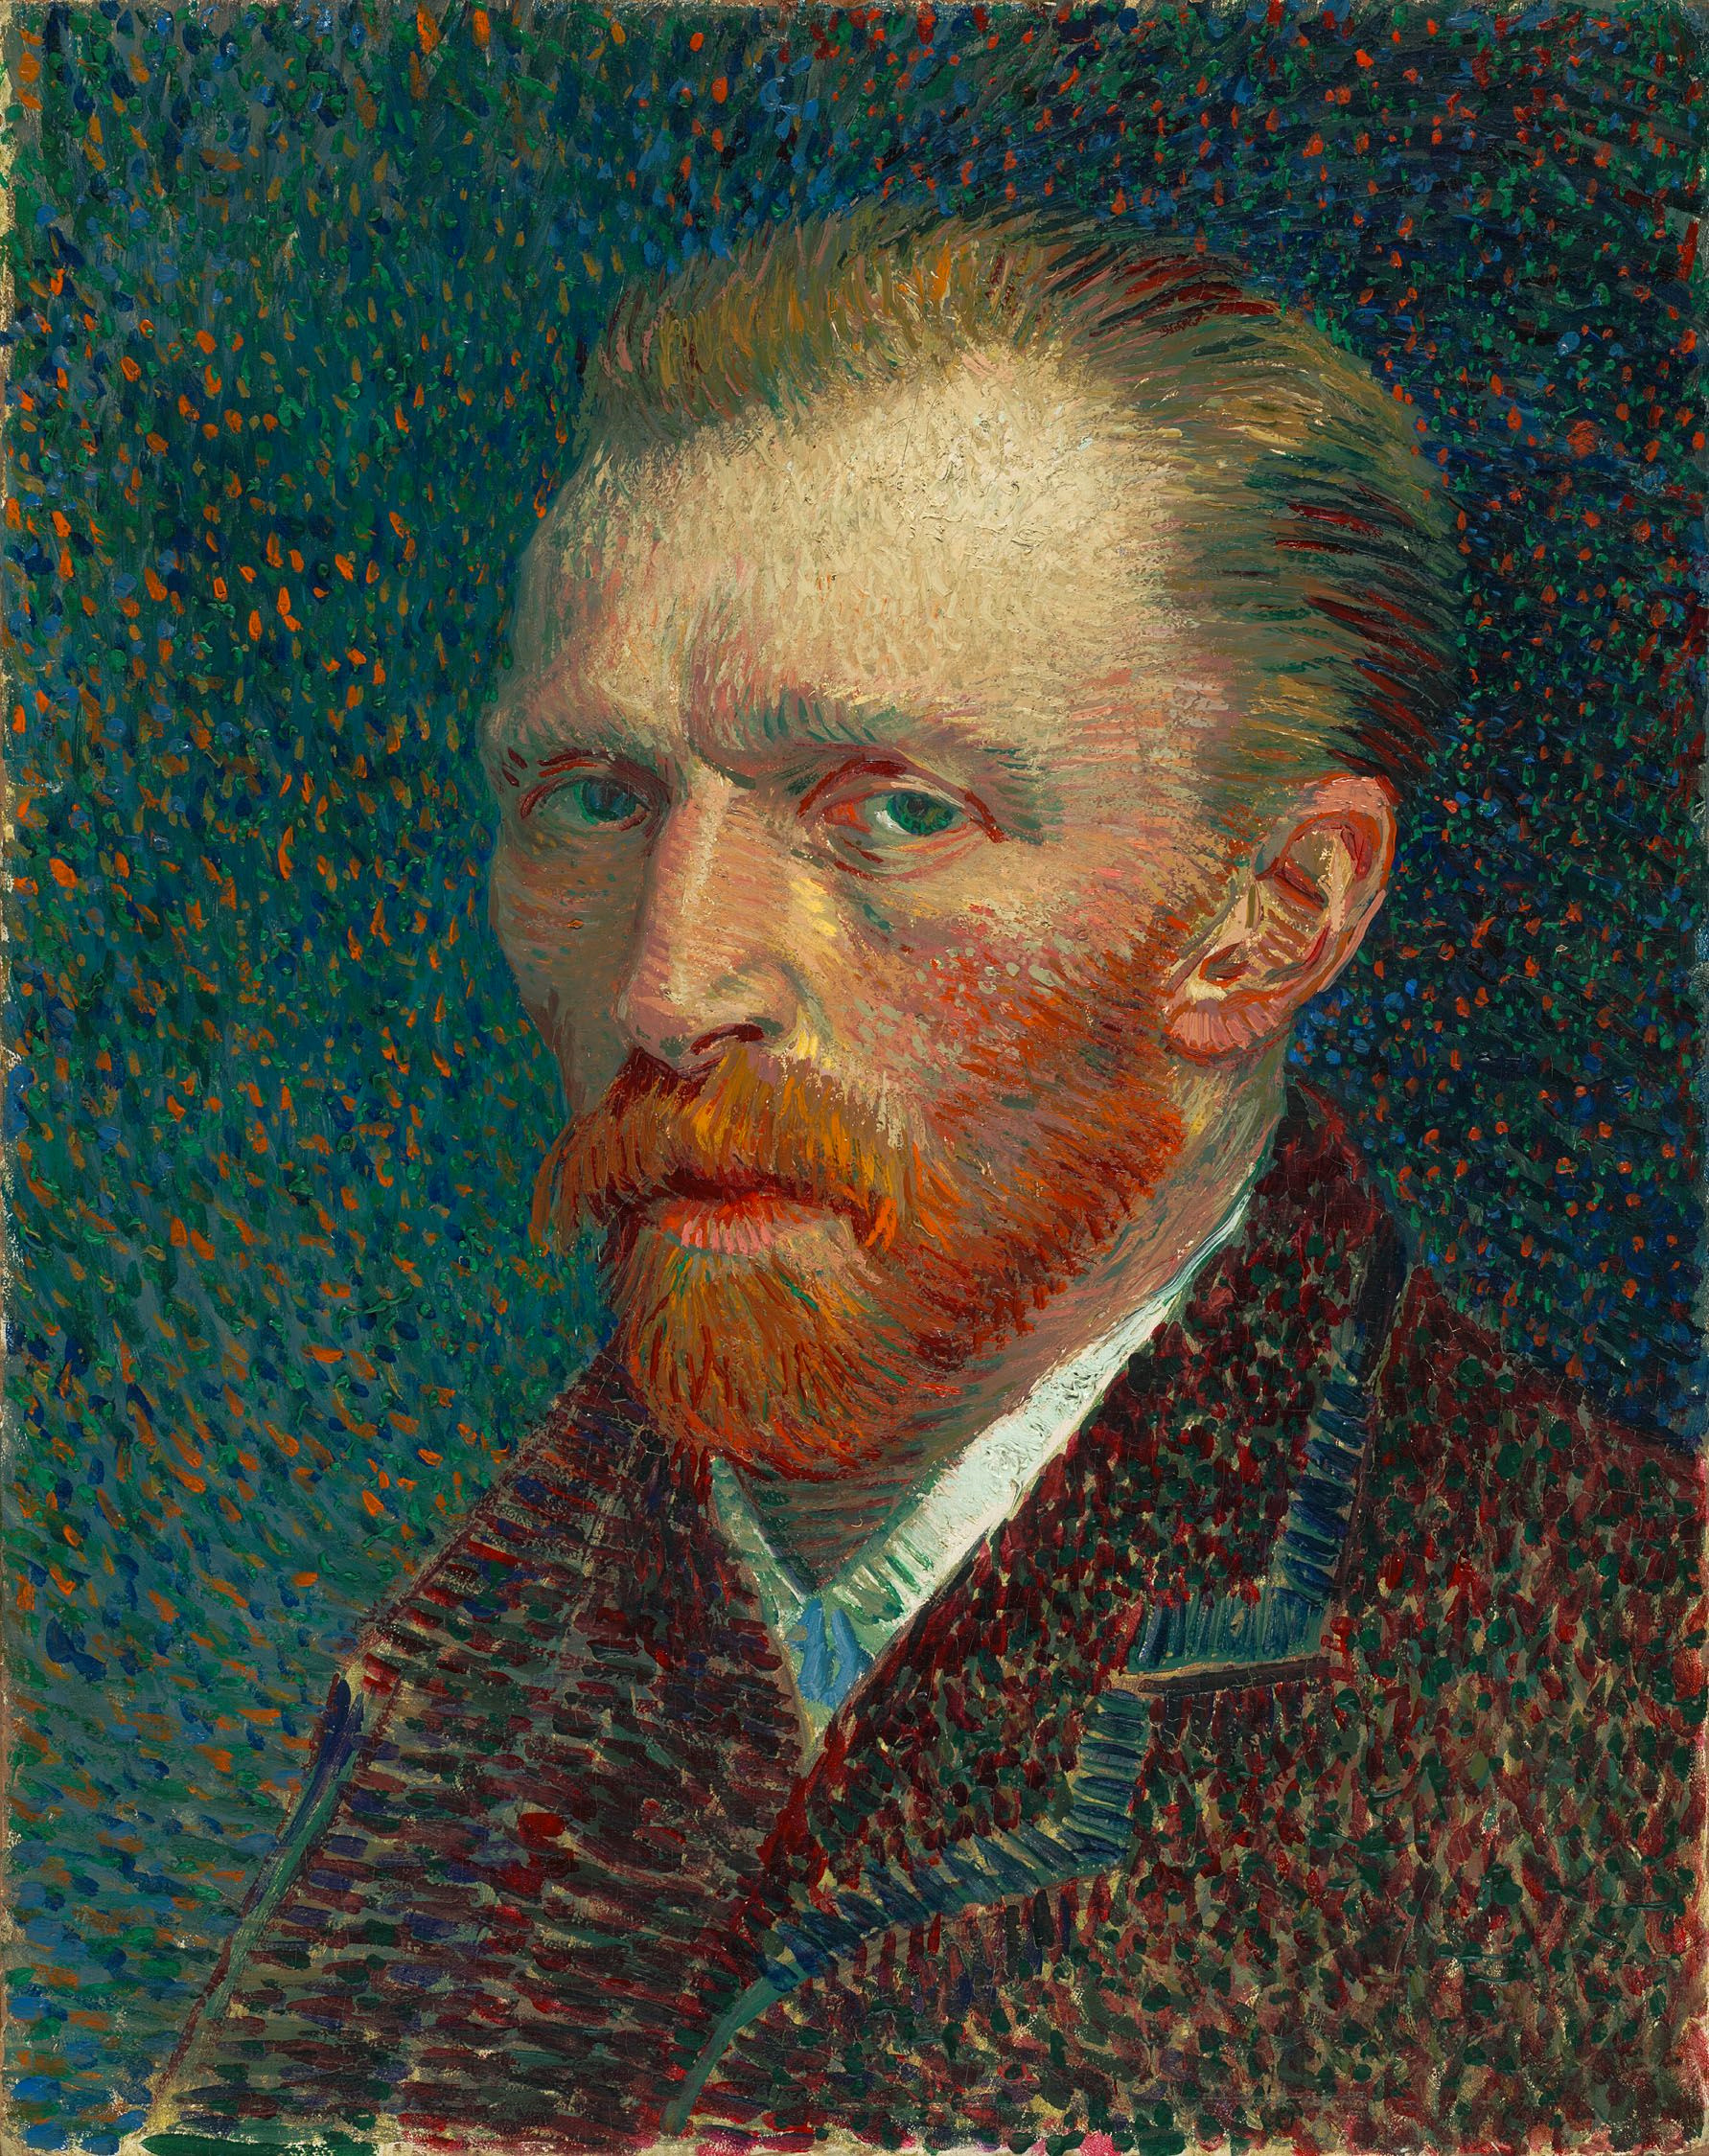 Vincent van Gogh [Public domain], via Wikimedia Commons